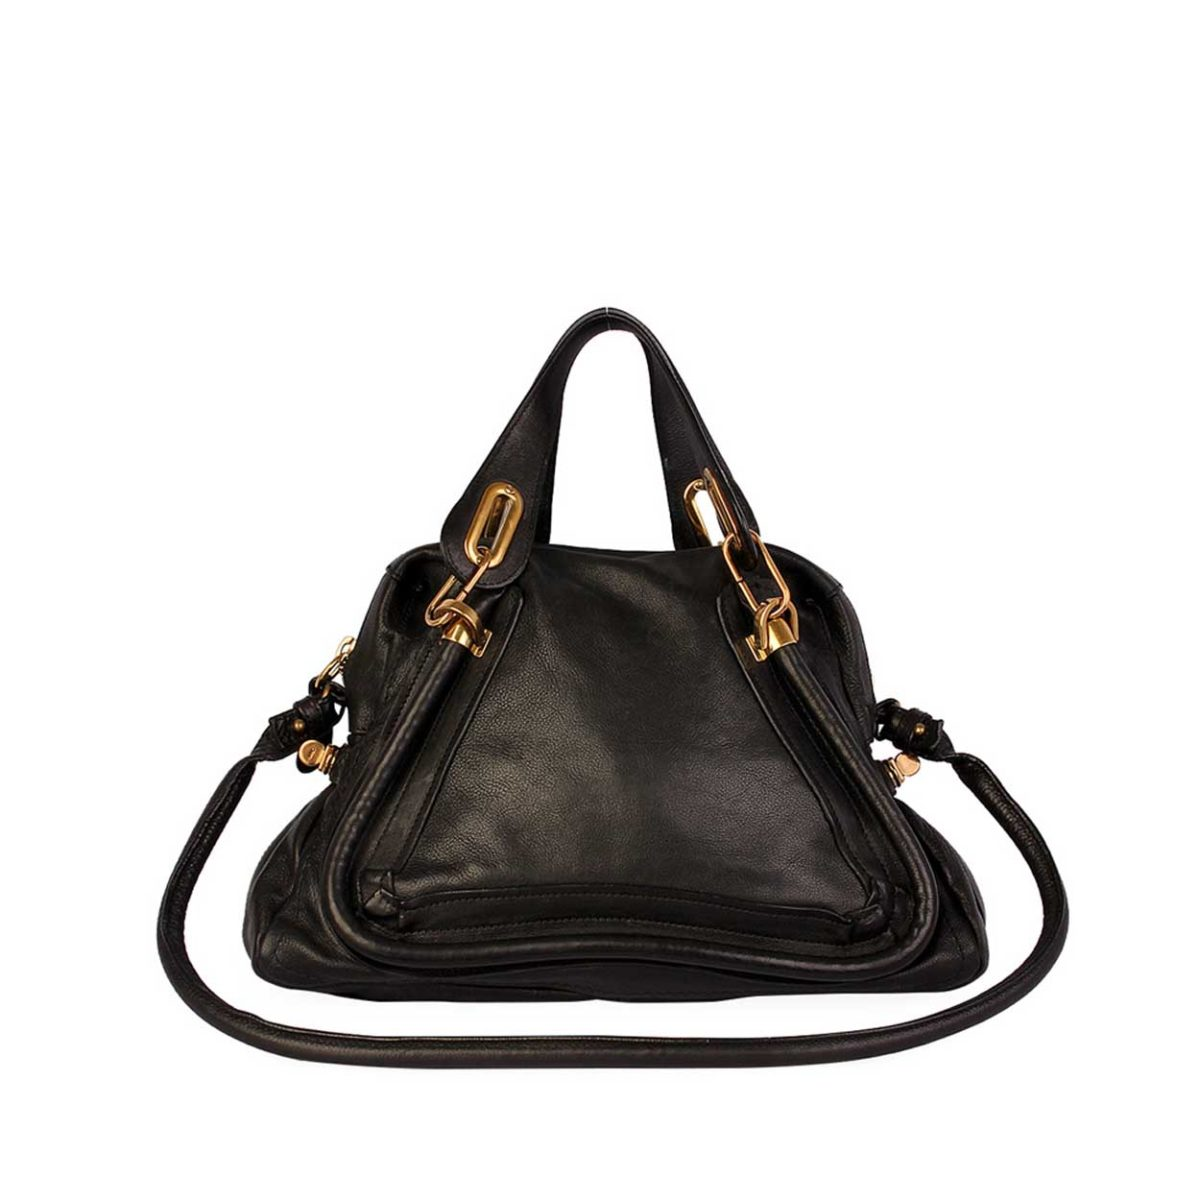 attractivedesigns how to find customers first CHLOE Pebbled Leather Small Paraty Bag Black